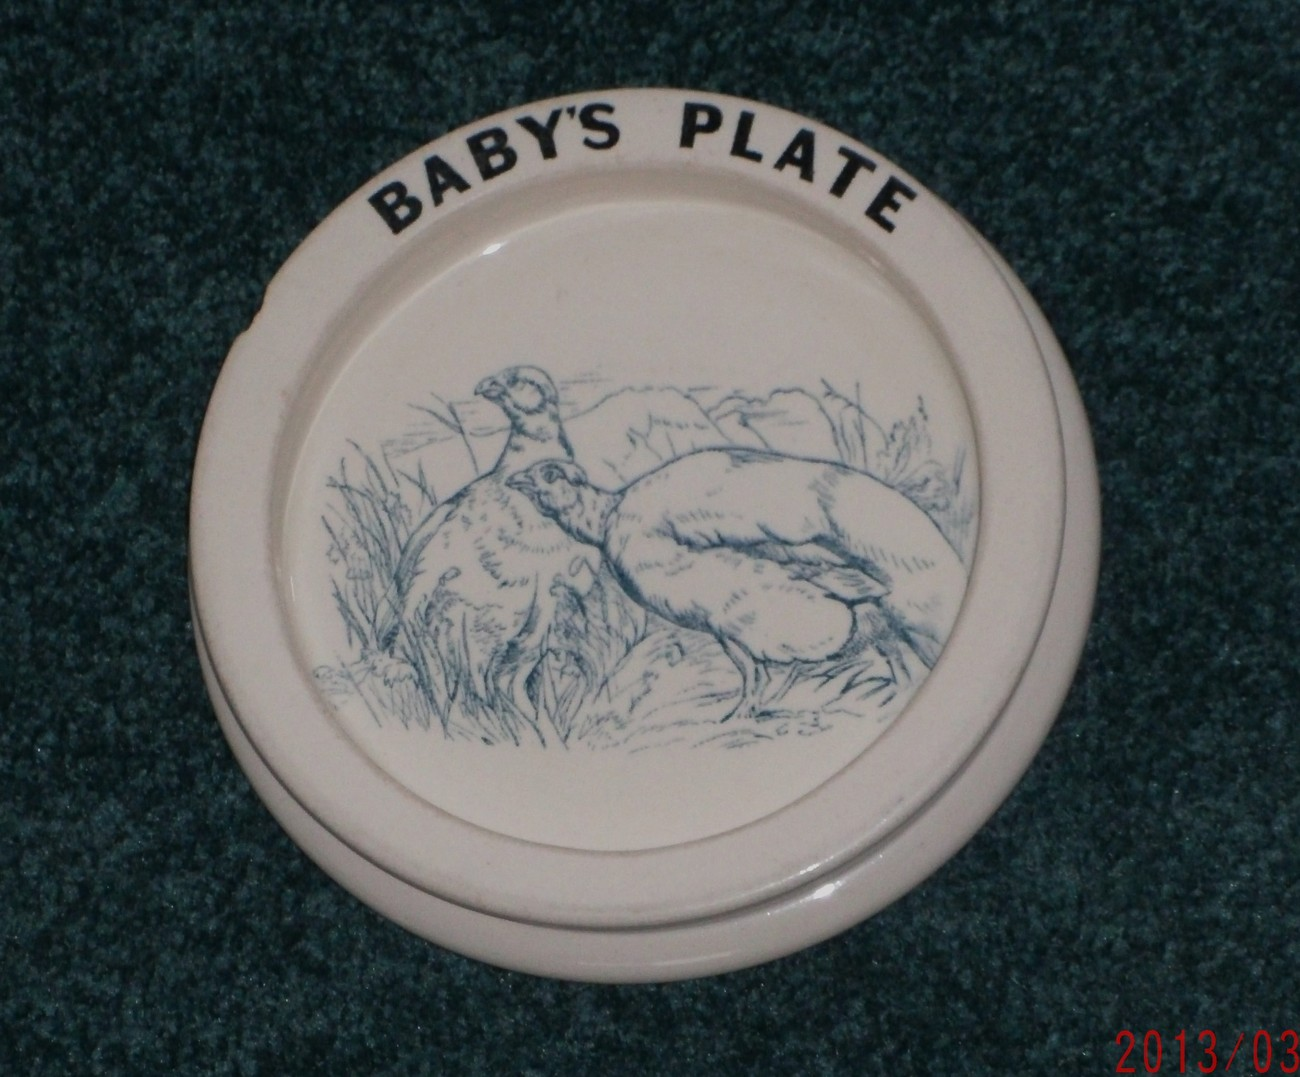 Baby s plate 001